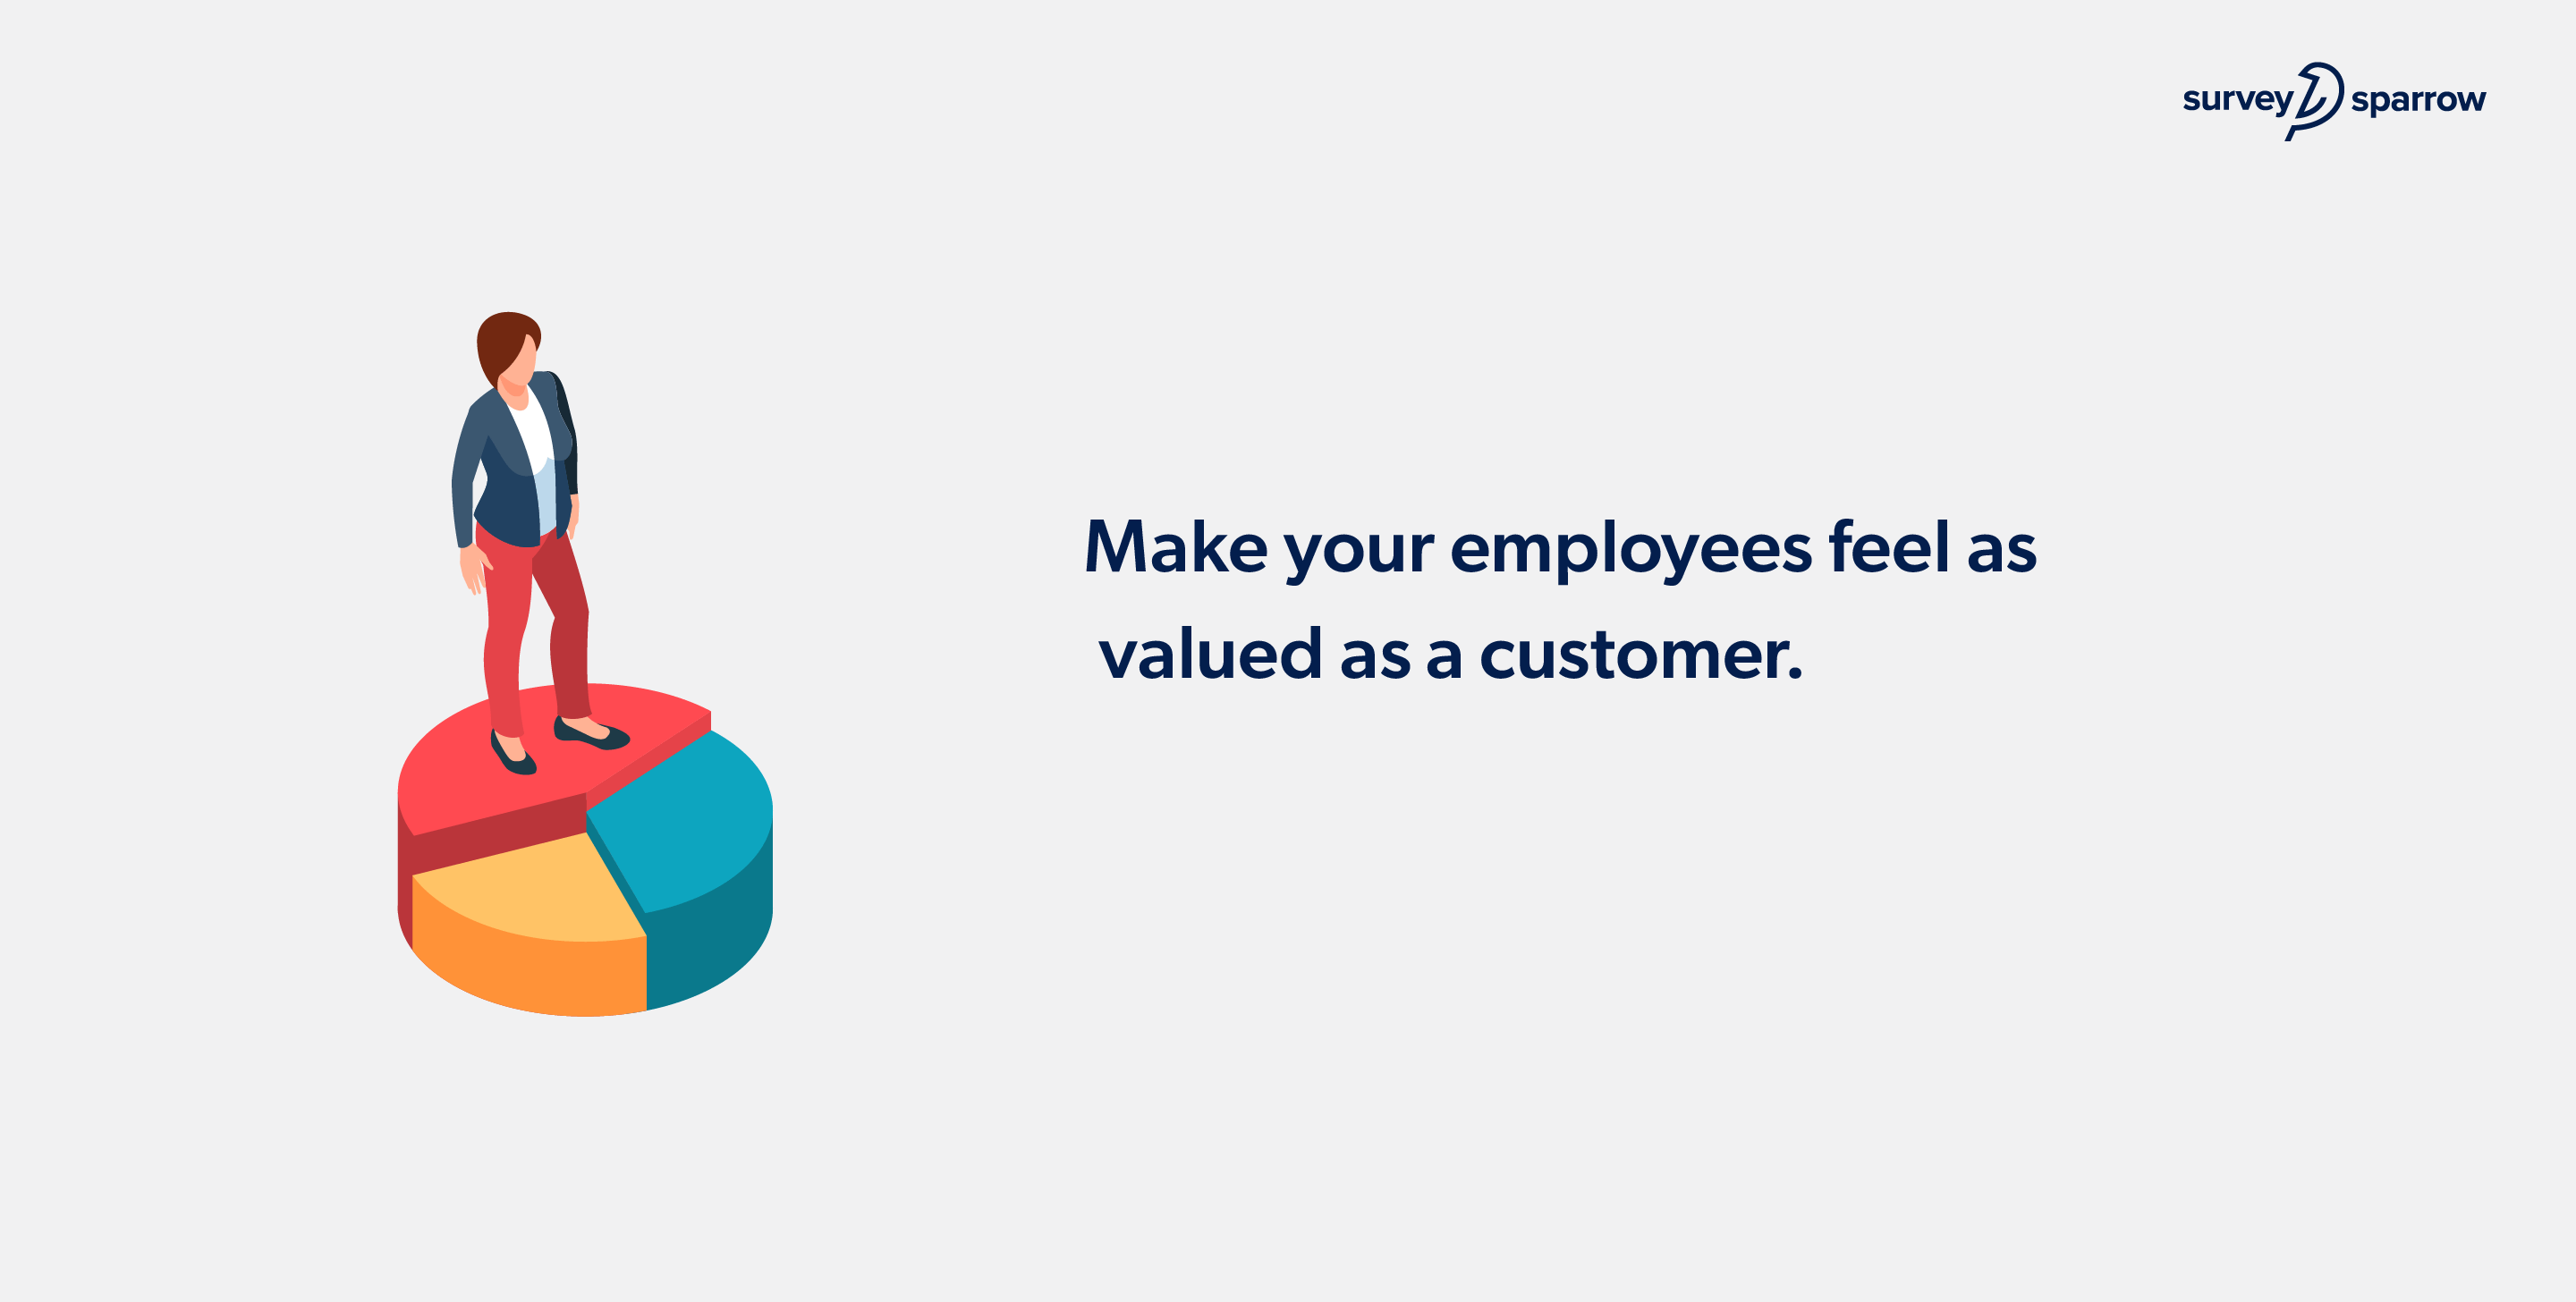 make employees feel valued, this will motivate them and improve employee performance.